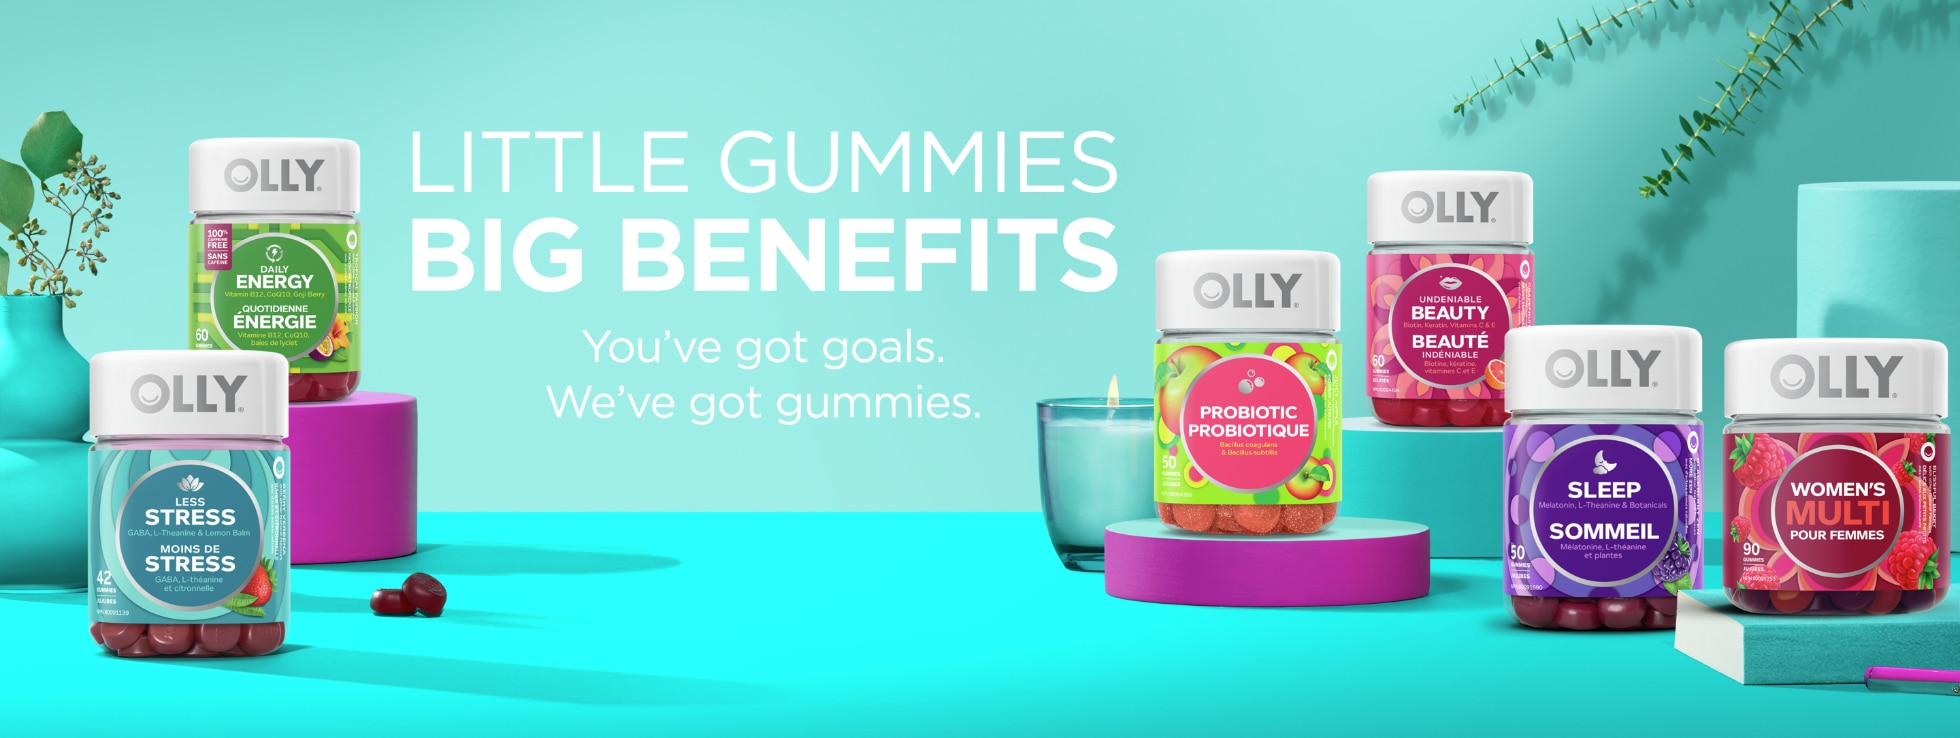 OLLY GUMMY VITAMINS & SUPPLEMENTS